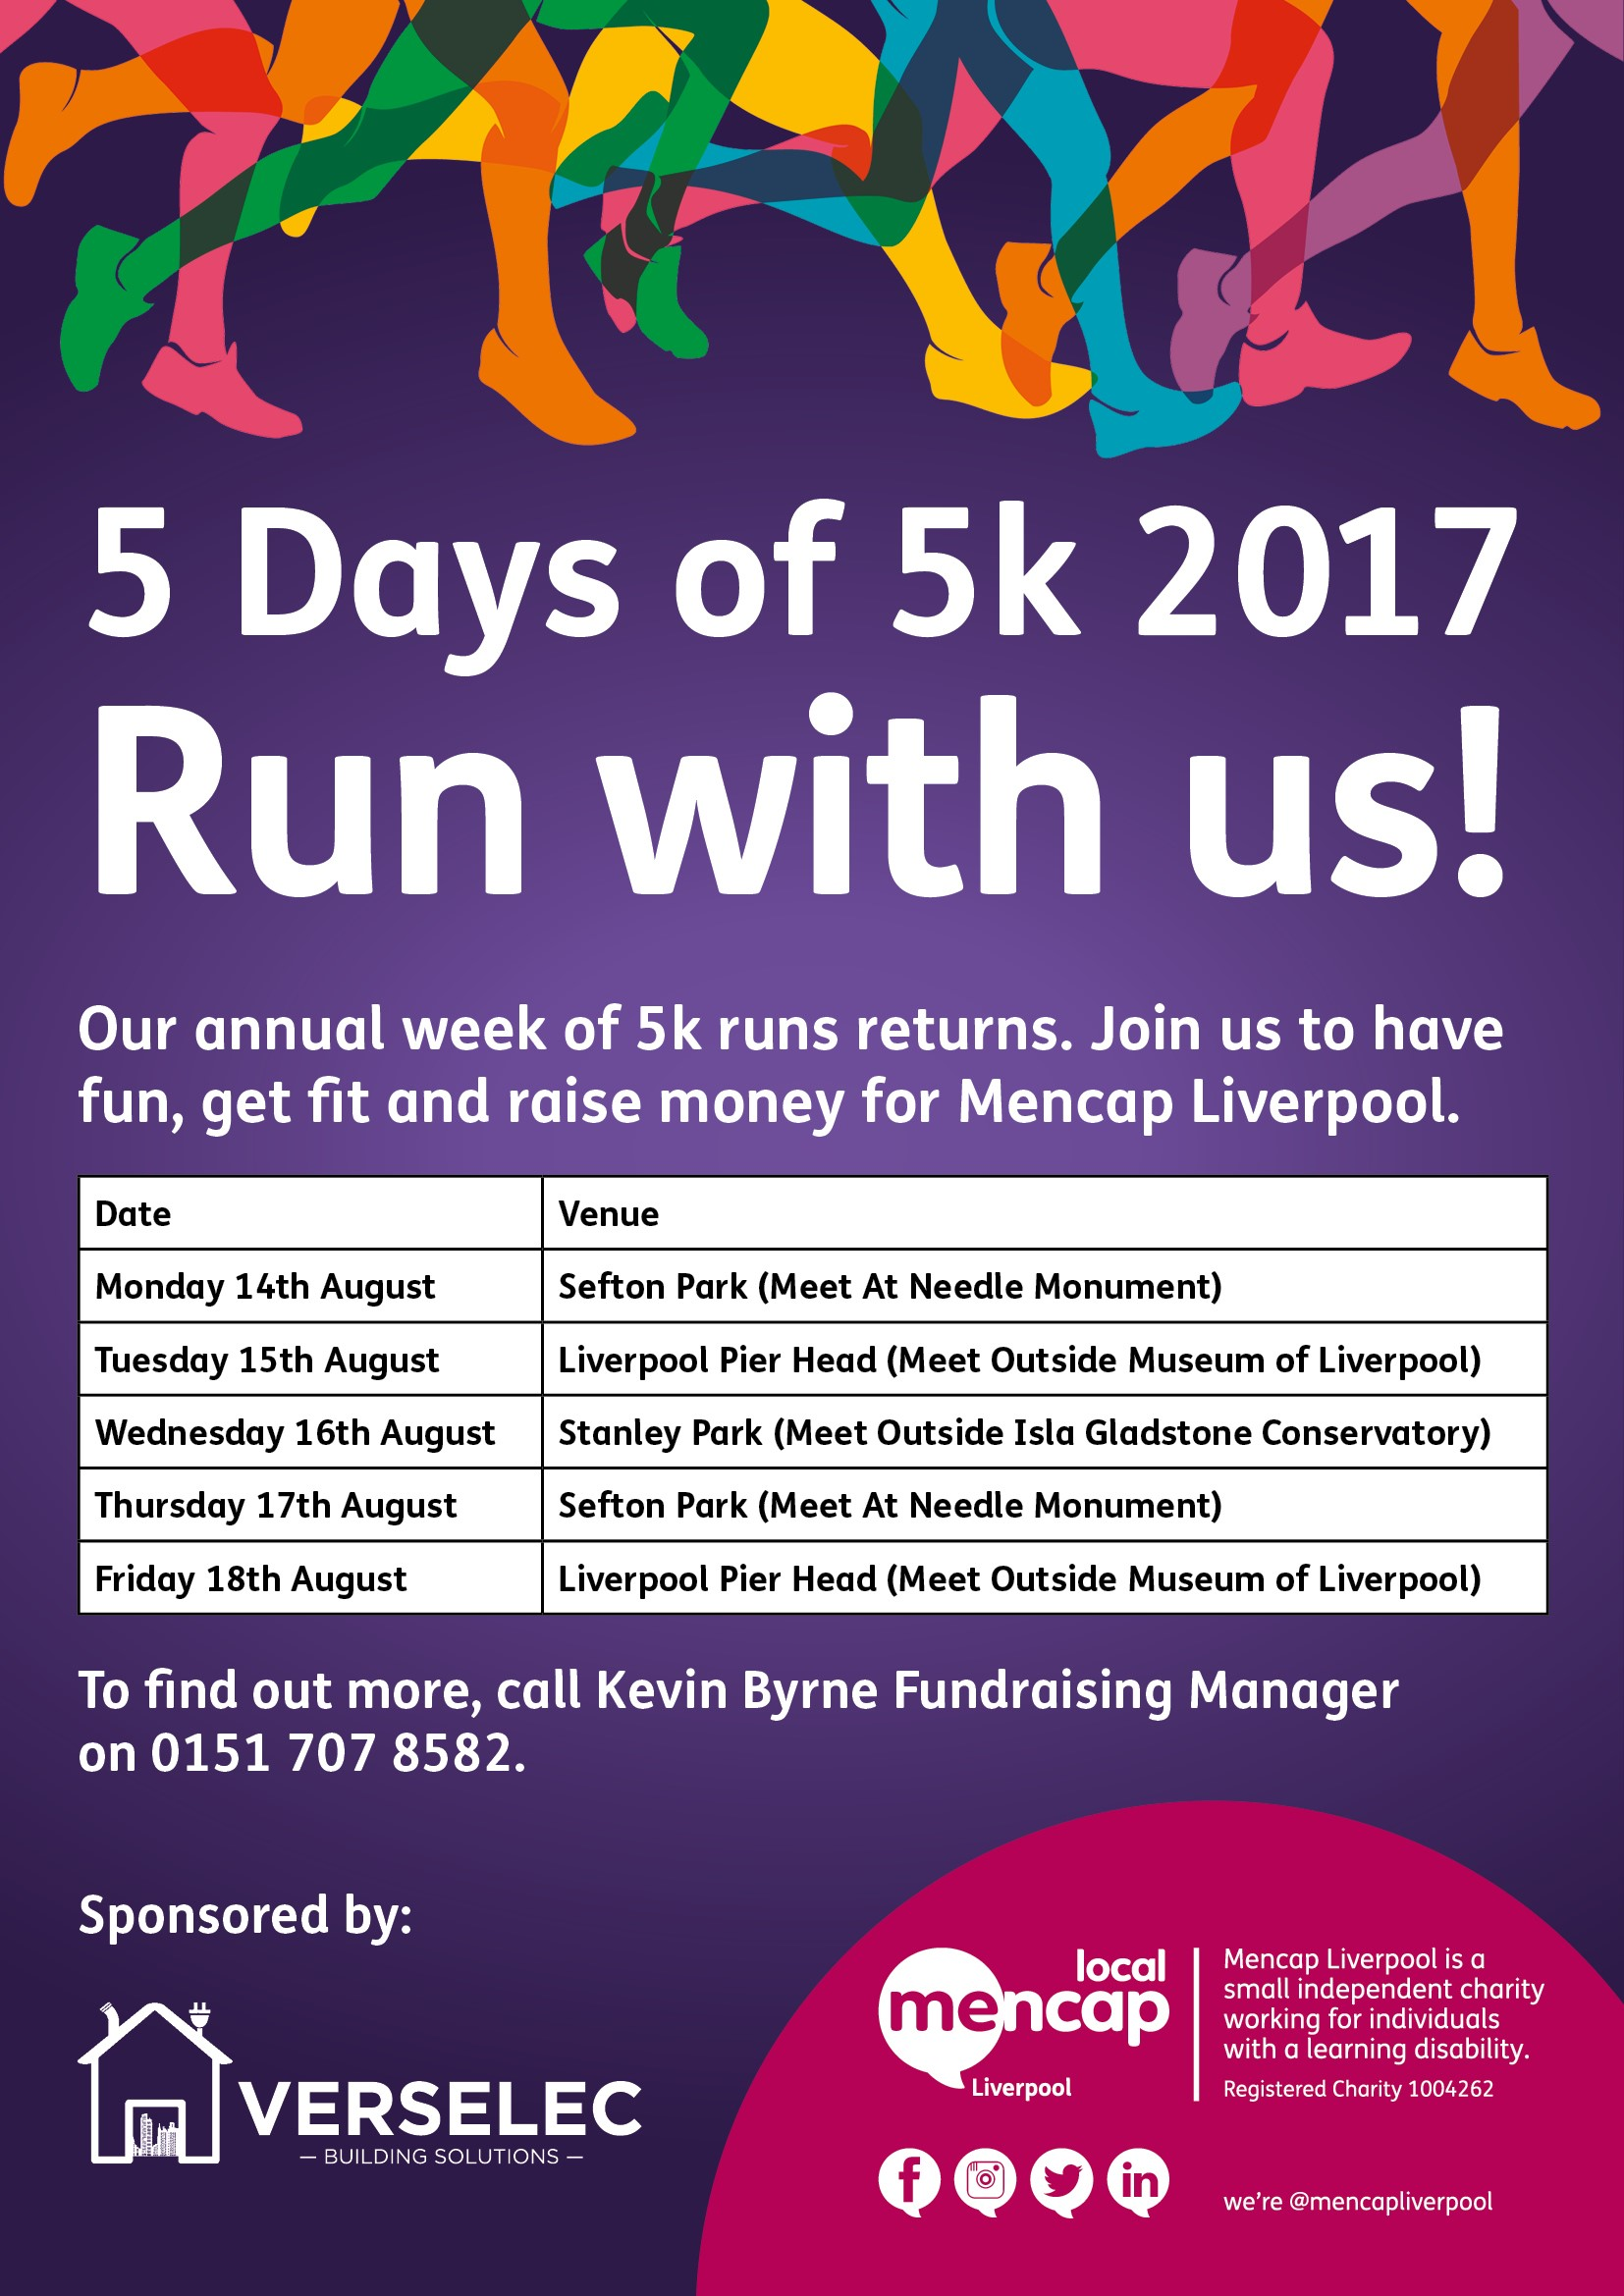 Following On From The Success Of Our Previous Events We Will Be Holding Third Annual Week 5 Days 5K Fun Run In August To Raise Funds For